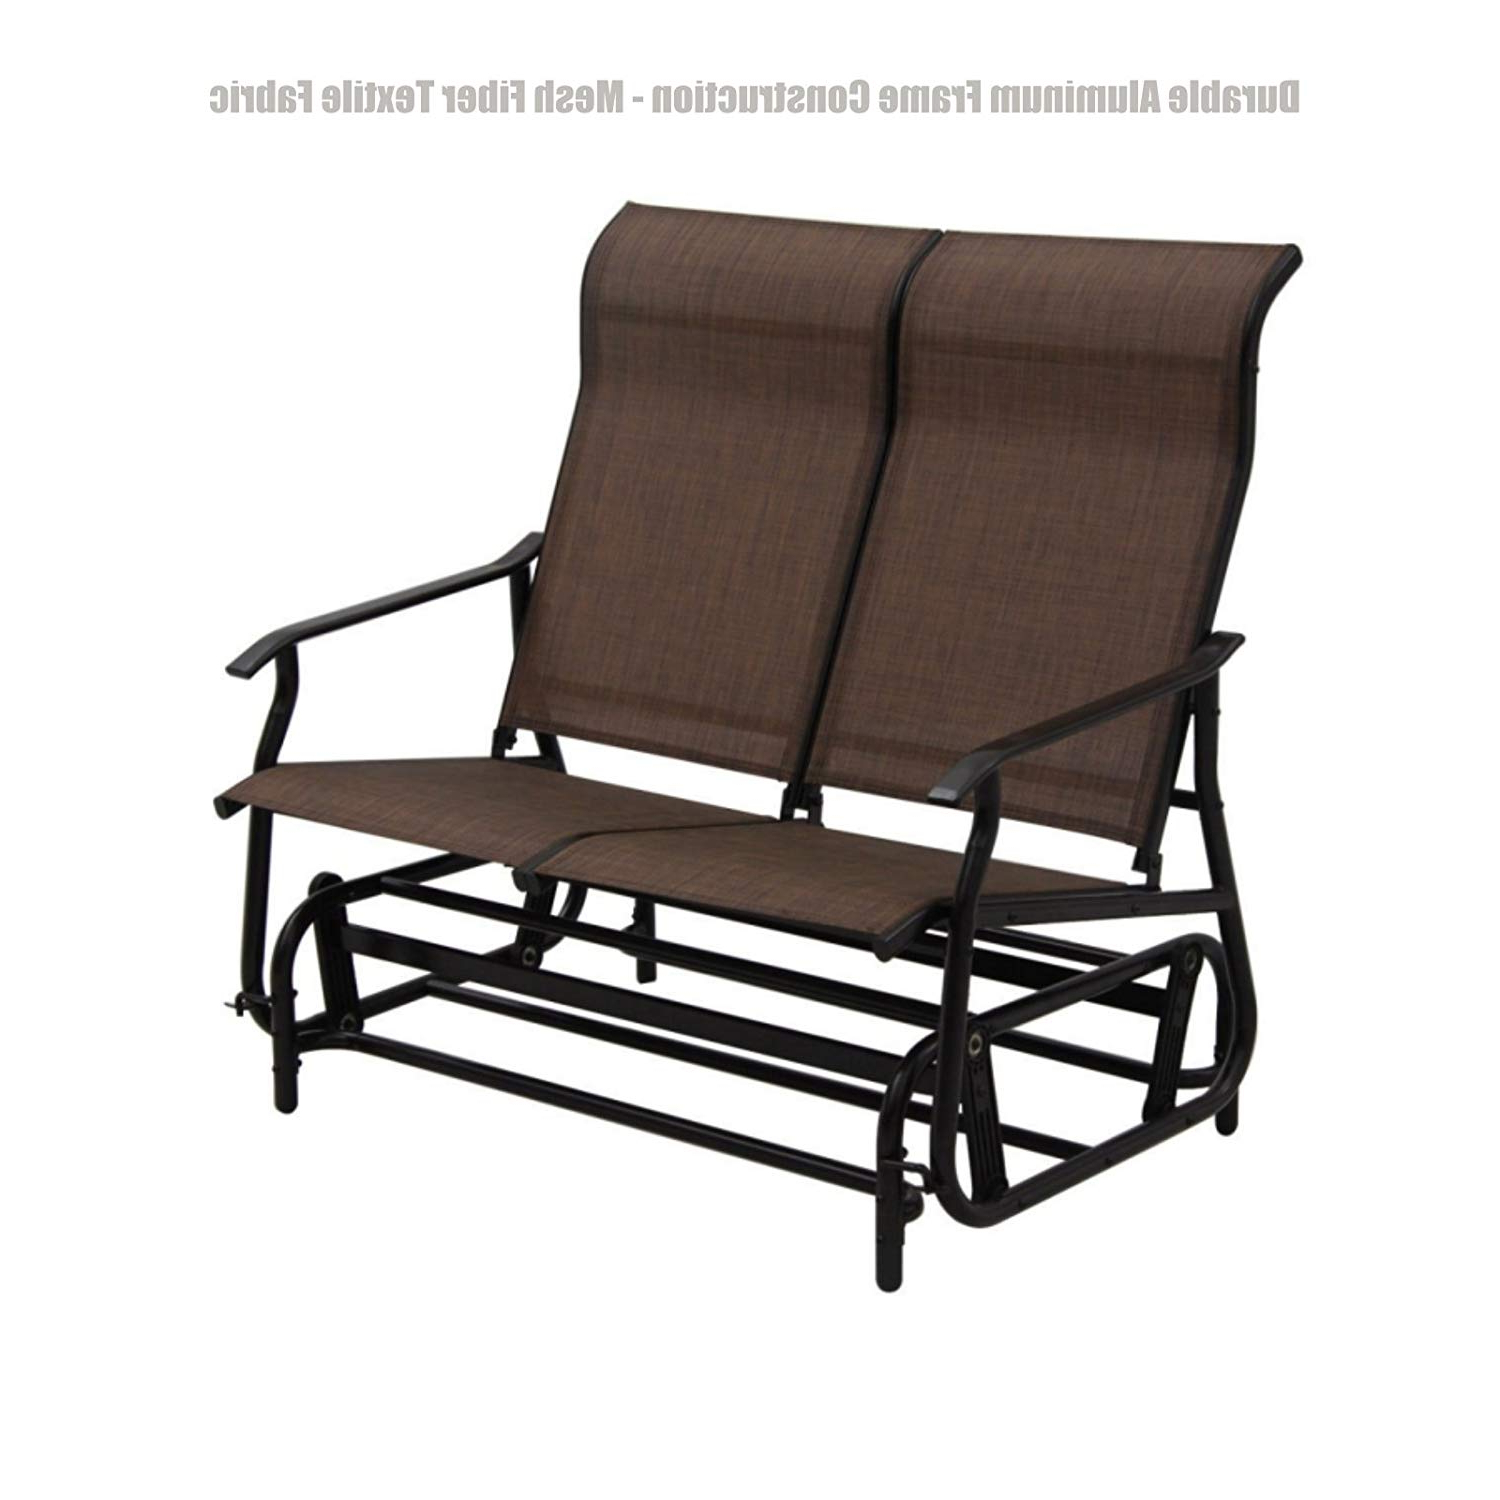 Amazon: Patio Furniture Outdoor Indoor Glider Bench Throughout Fashionable Outdoor Fabric Glider Benches (View 15 of 30)